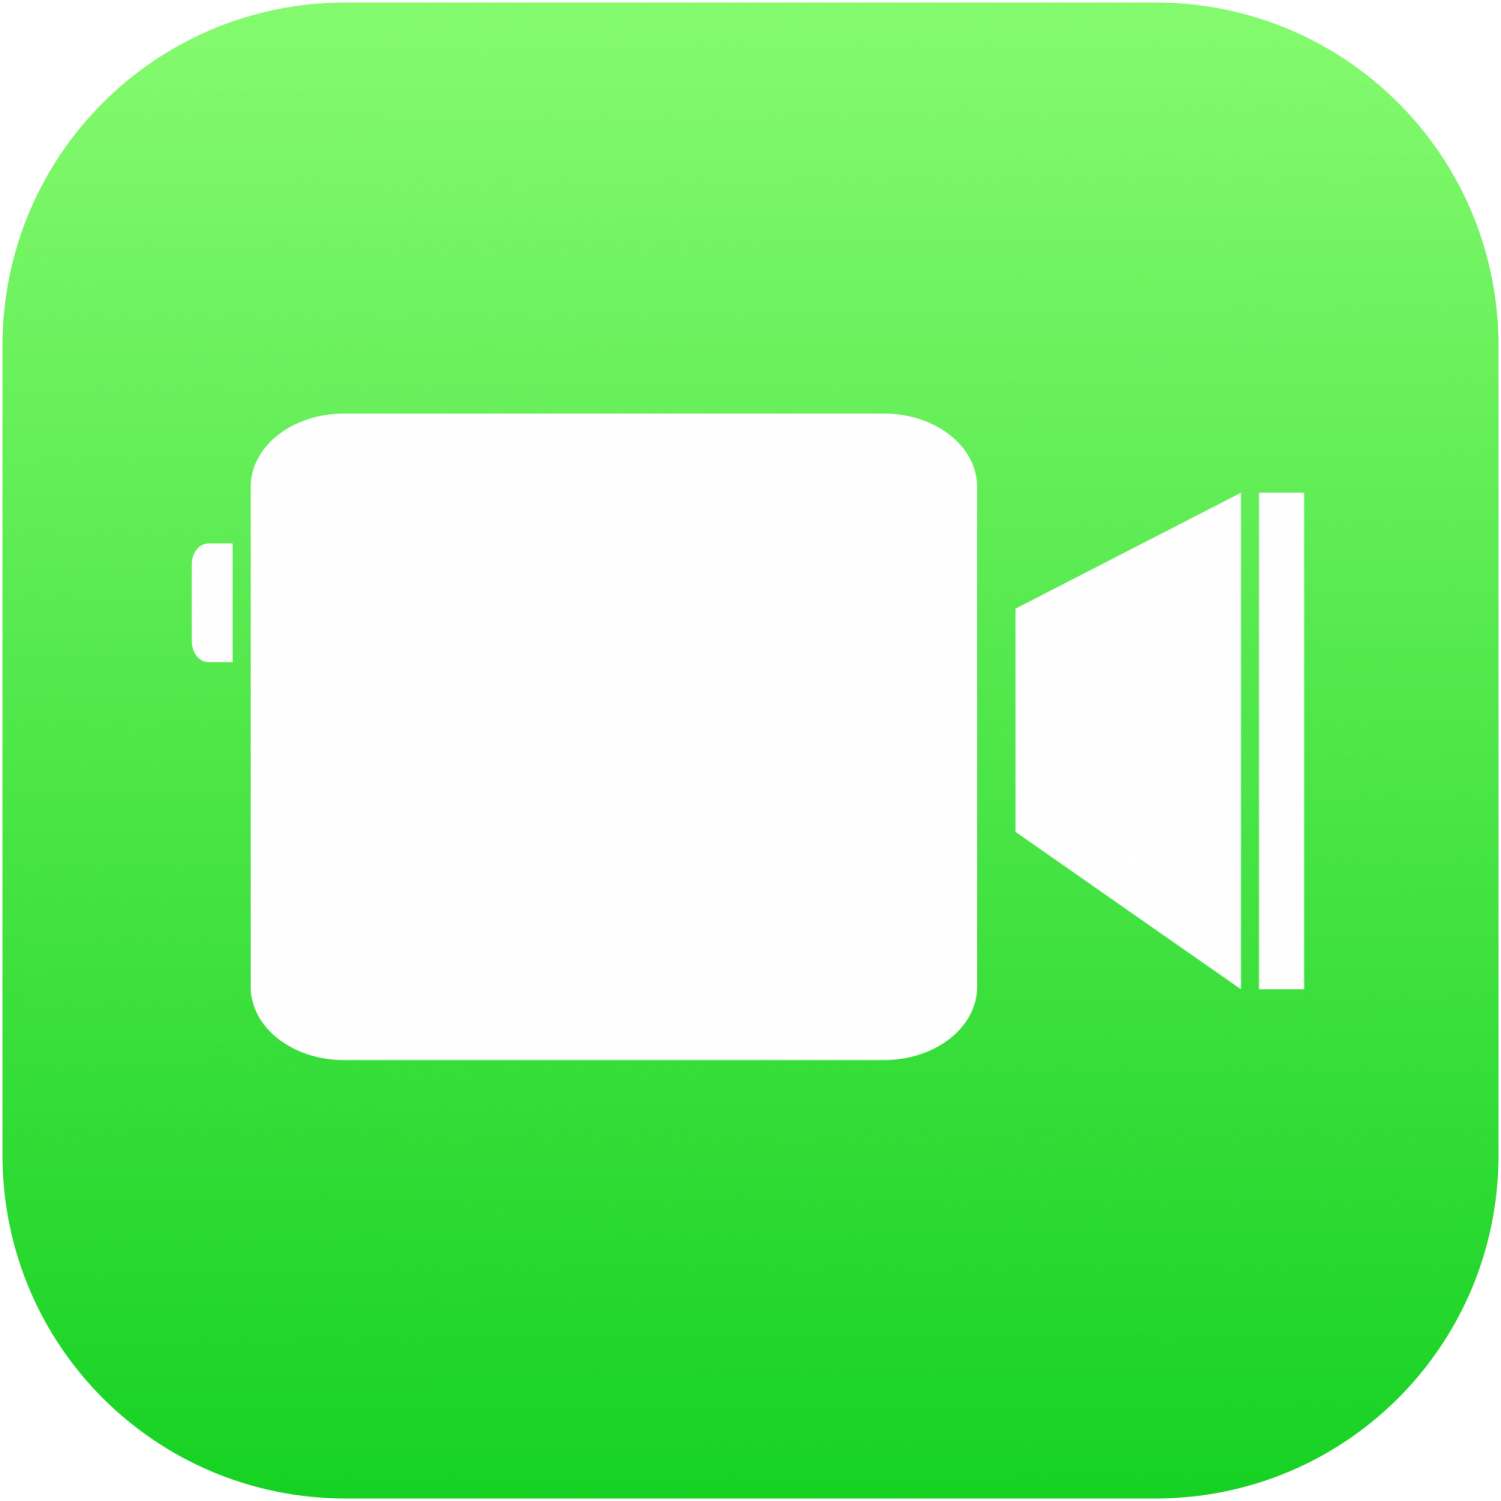 Although it is still possible to FaceTime with individual people, Group FaceTime will not be available until the new software update with the bug fix is released. Photo courtesy of Creative Commons.